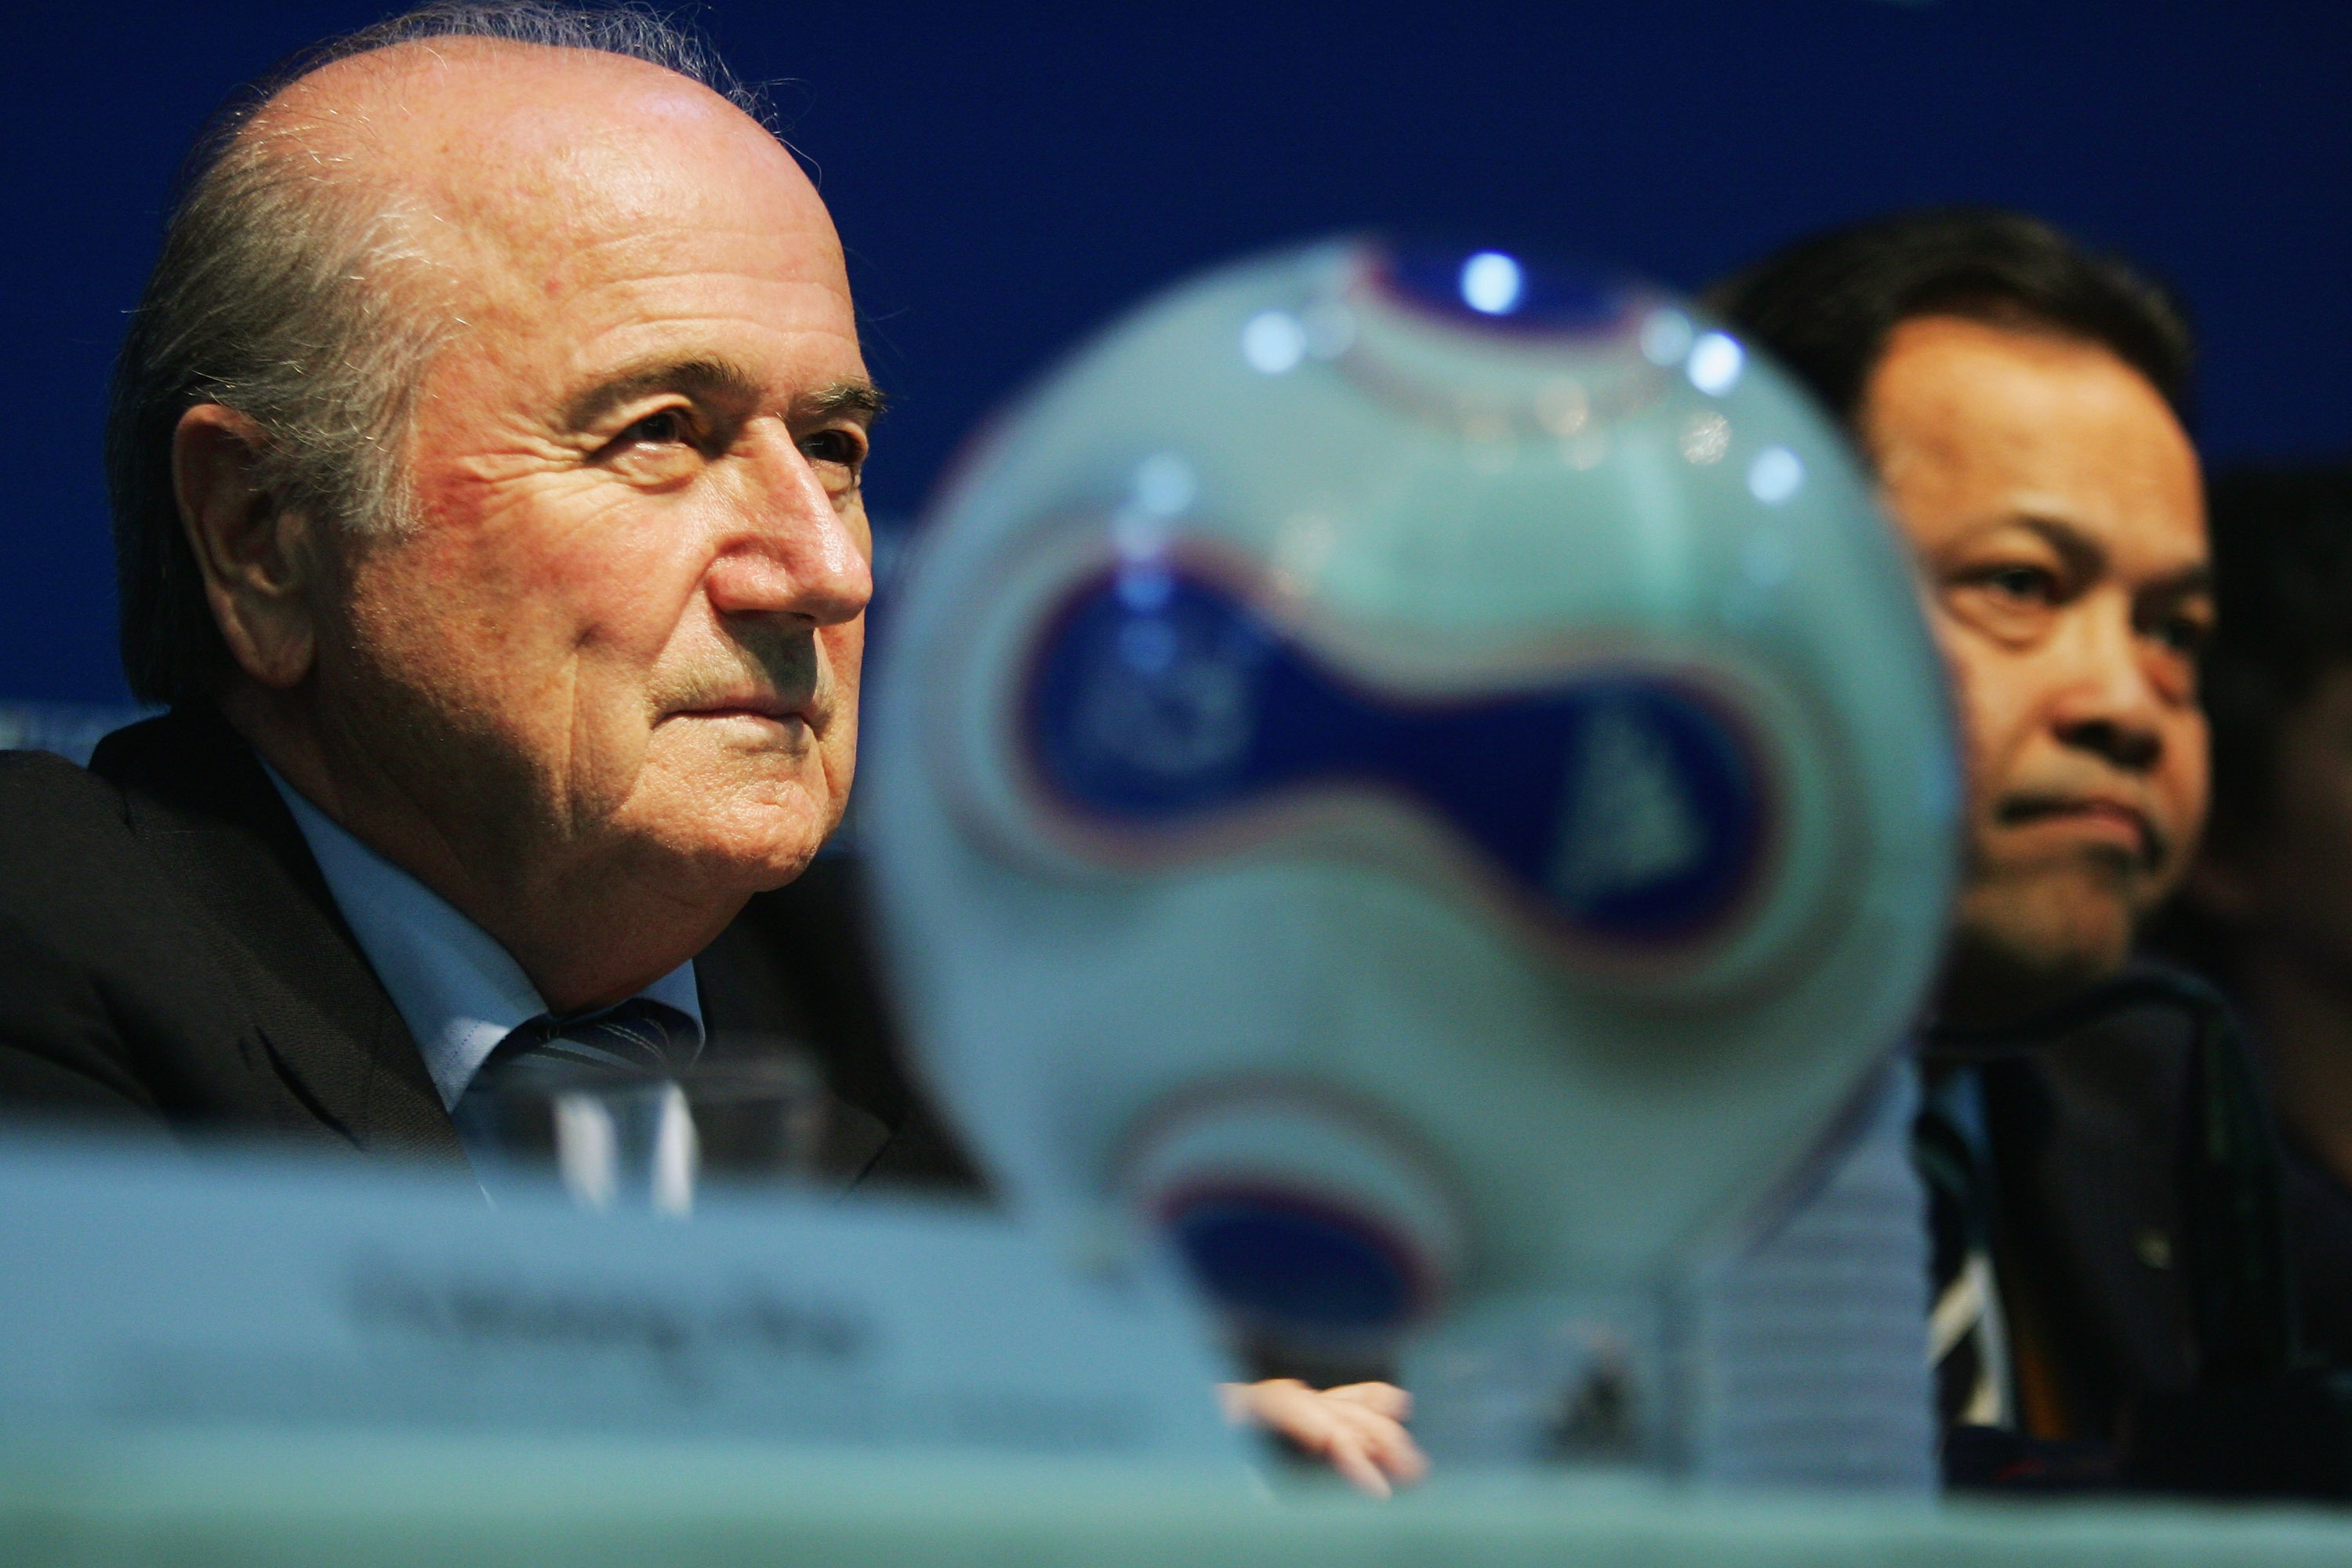 HANGZHOU, CHINA - SEPTEMBER 27:  FIFA President Joseph S. Blatter and Chairman of the Committee for Women's Football Worawi Makudi talk to media at a press conference before the Women's World Cup 2007 Semi Final match between USA and Brazil at Hangzhou Dr